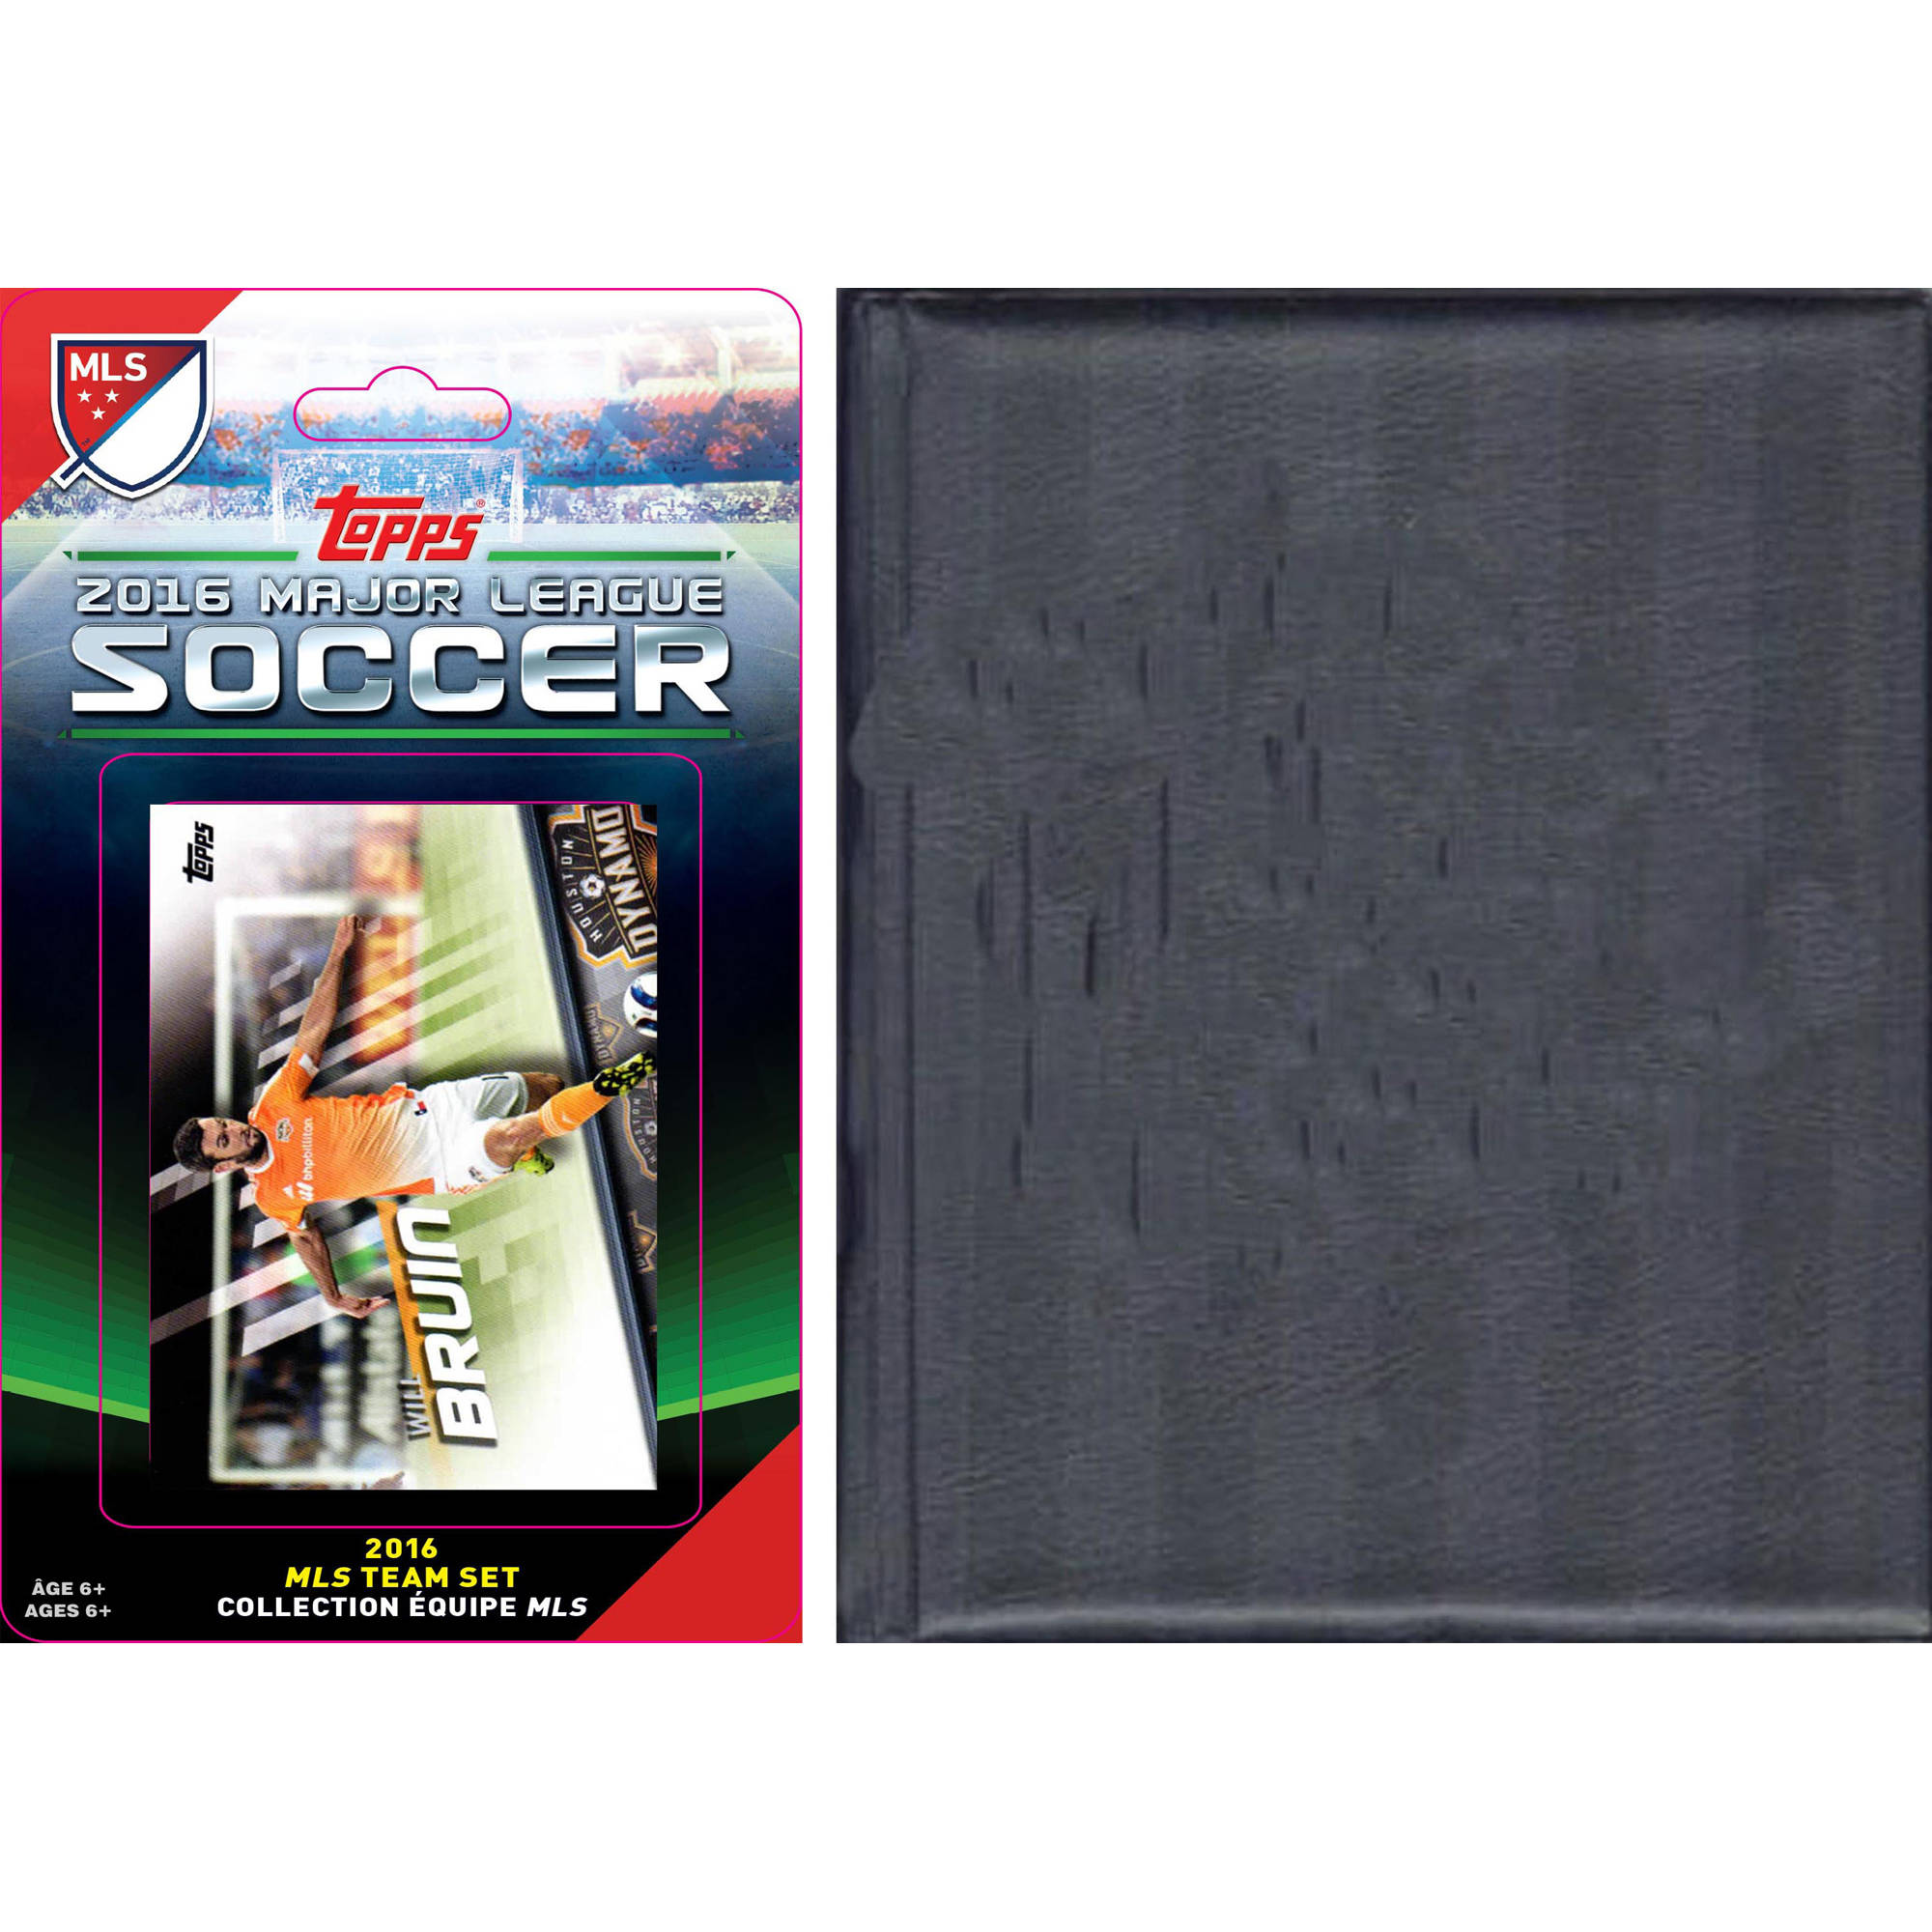 C&I Collectables MLS Houston Dynamo Licensed 2016 Topps Team Set and Storage Album